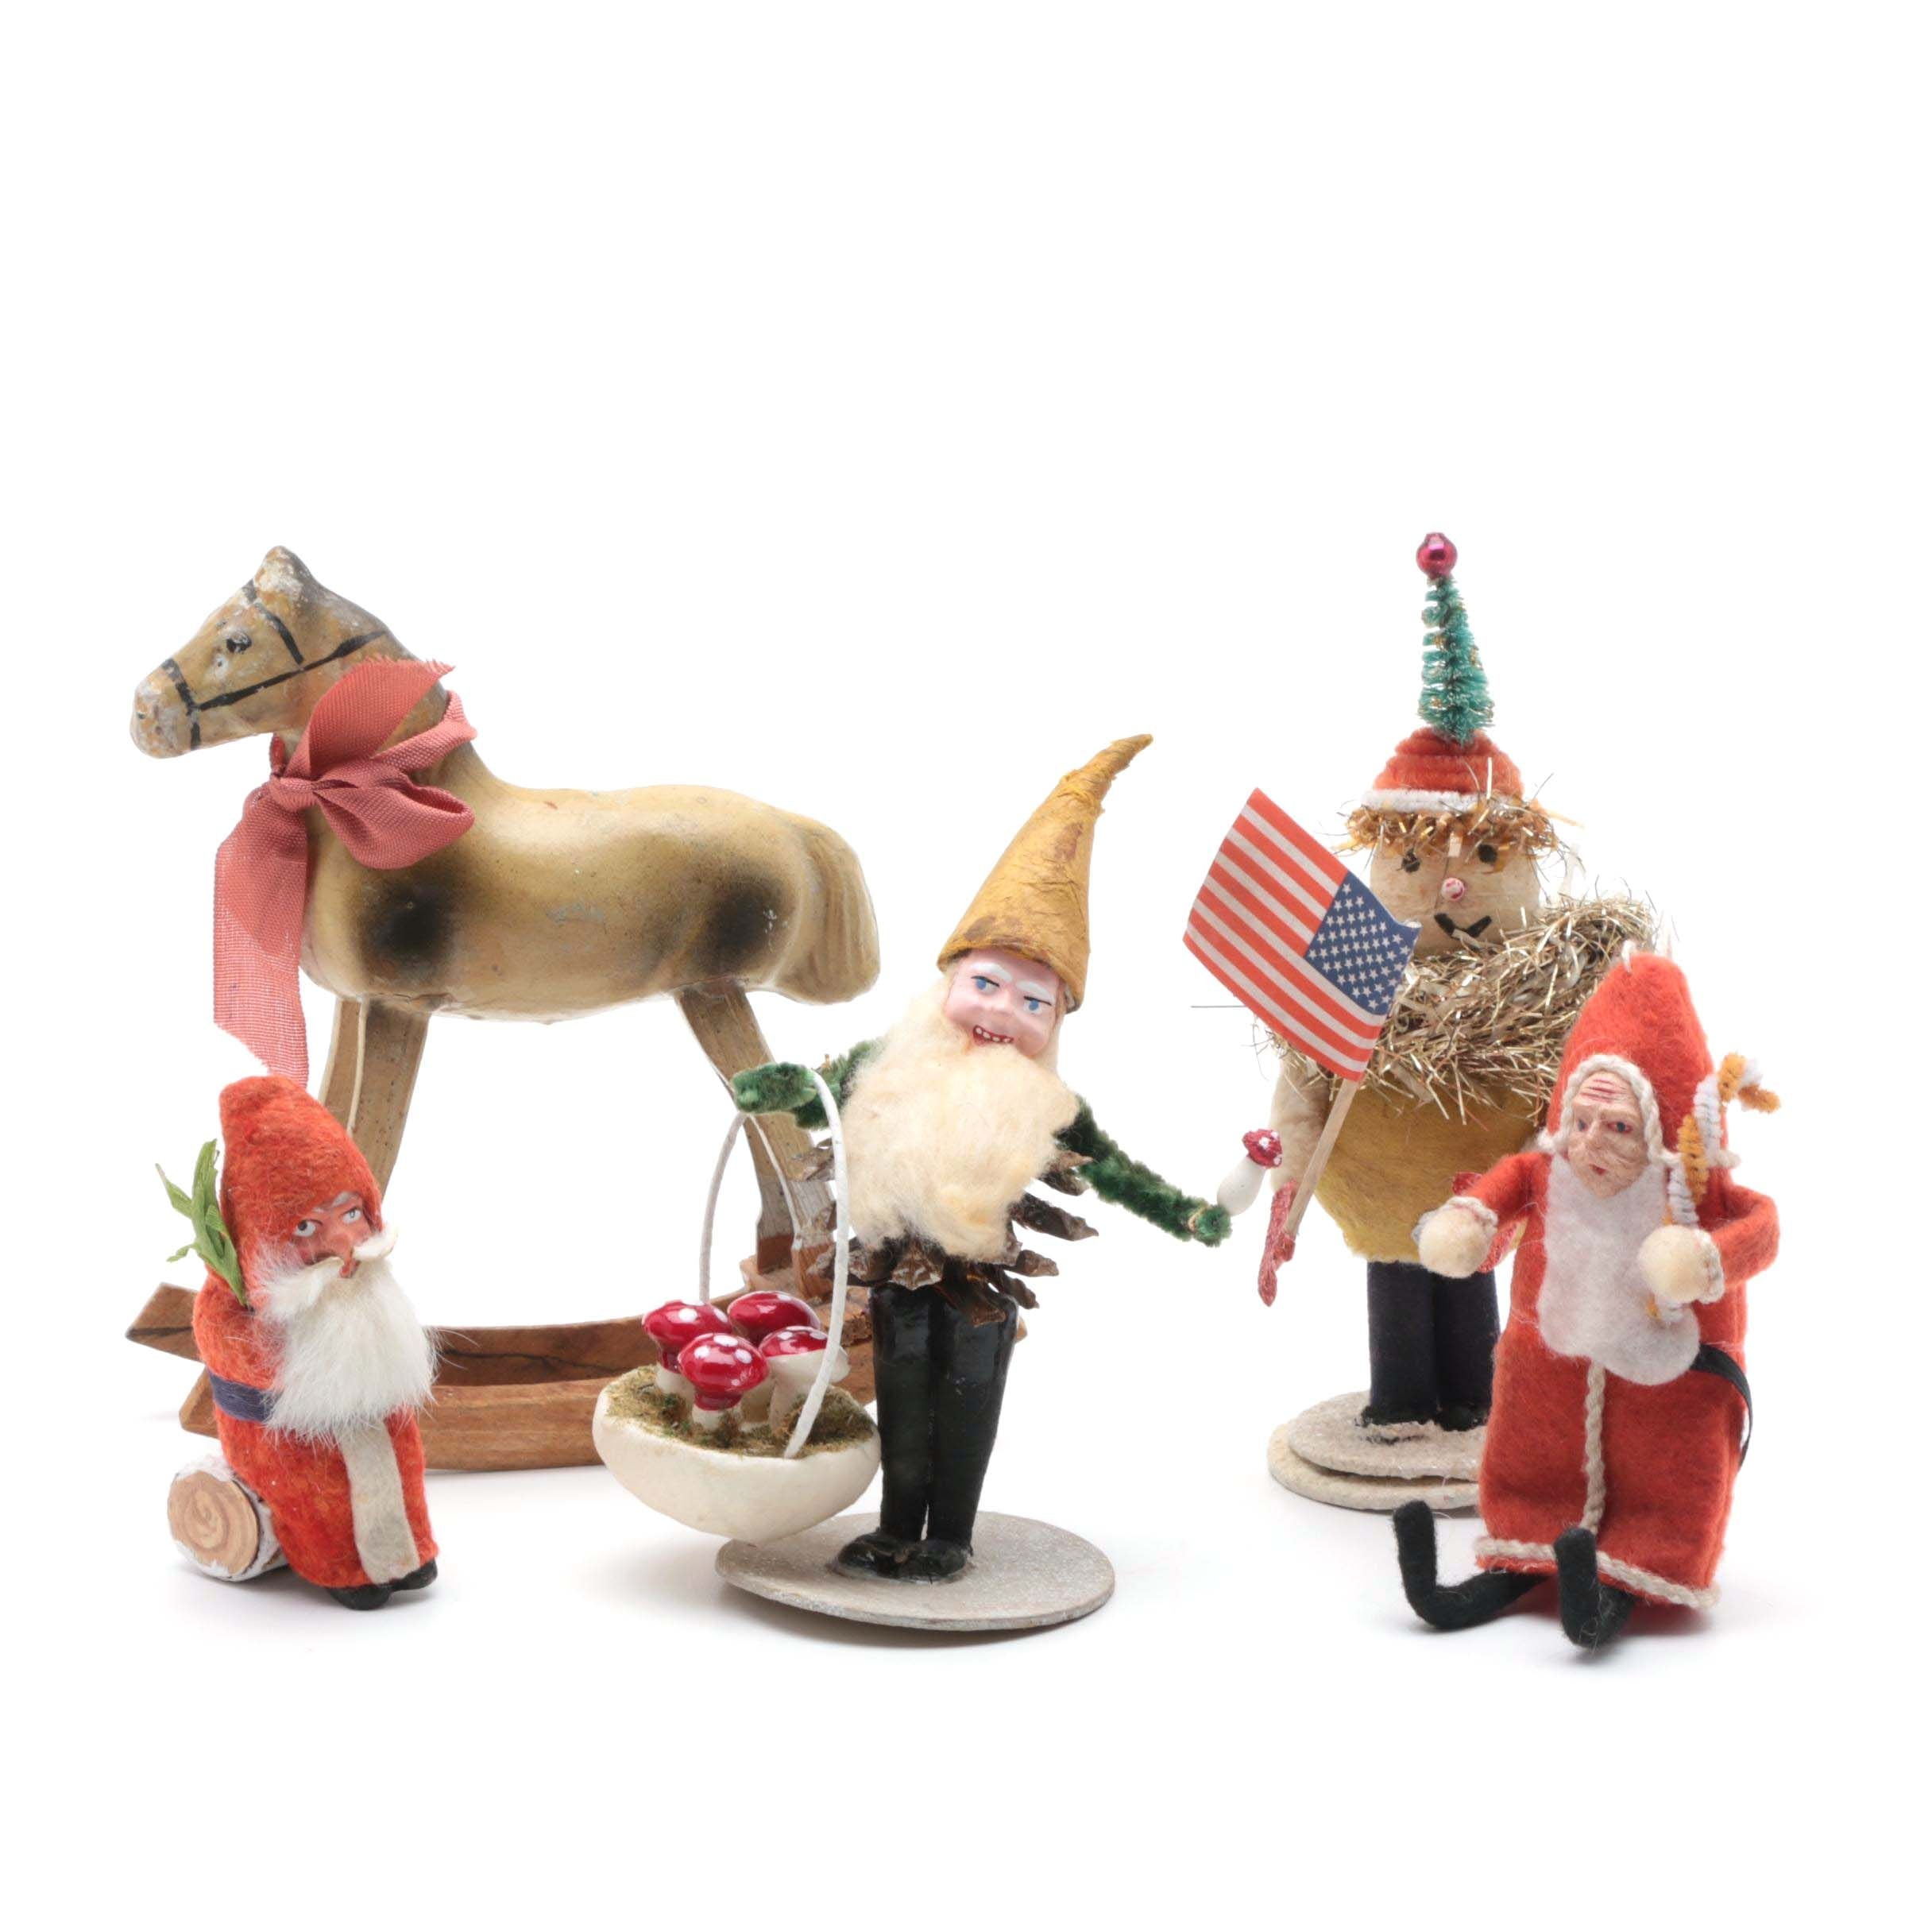 Five Vintage Christmas Figurines